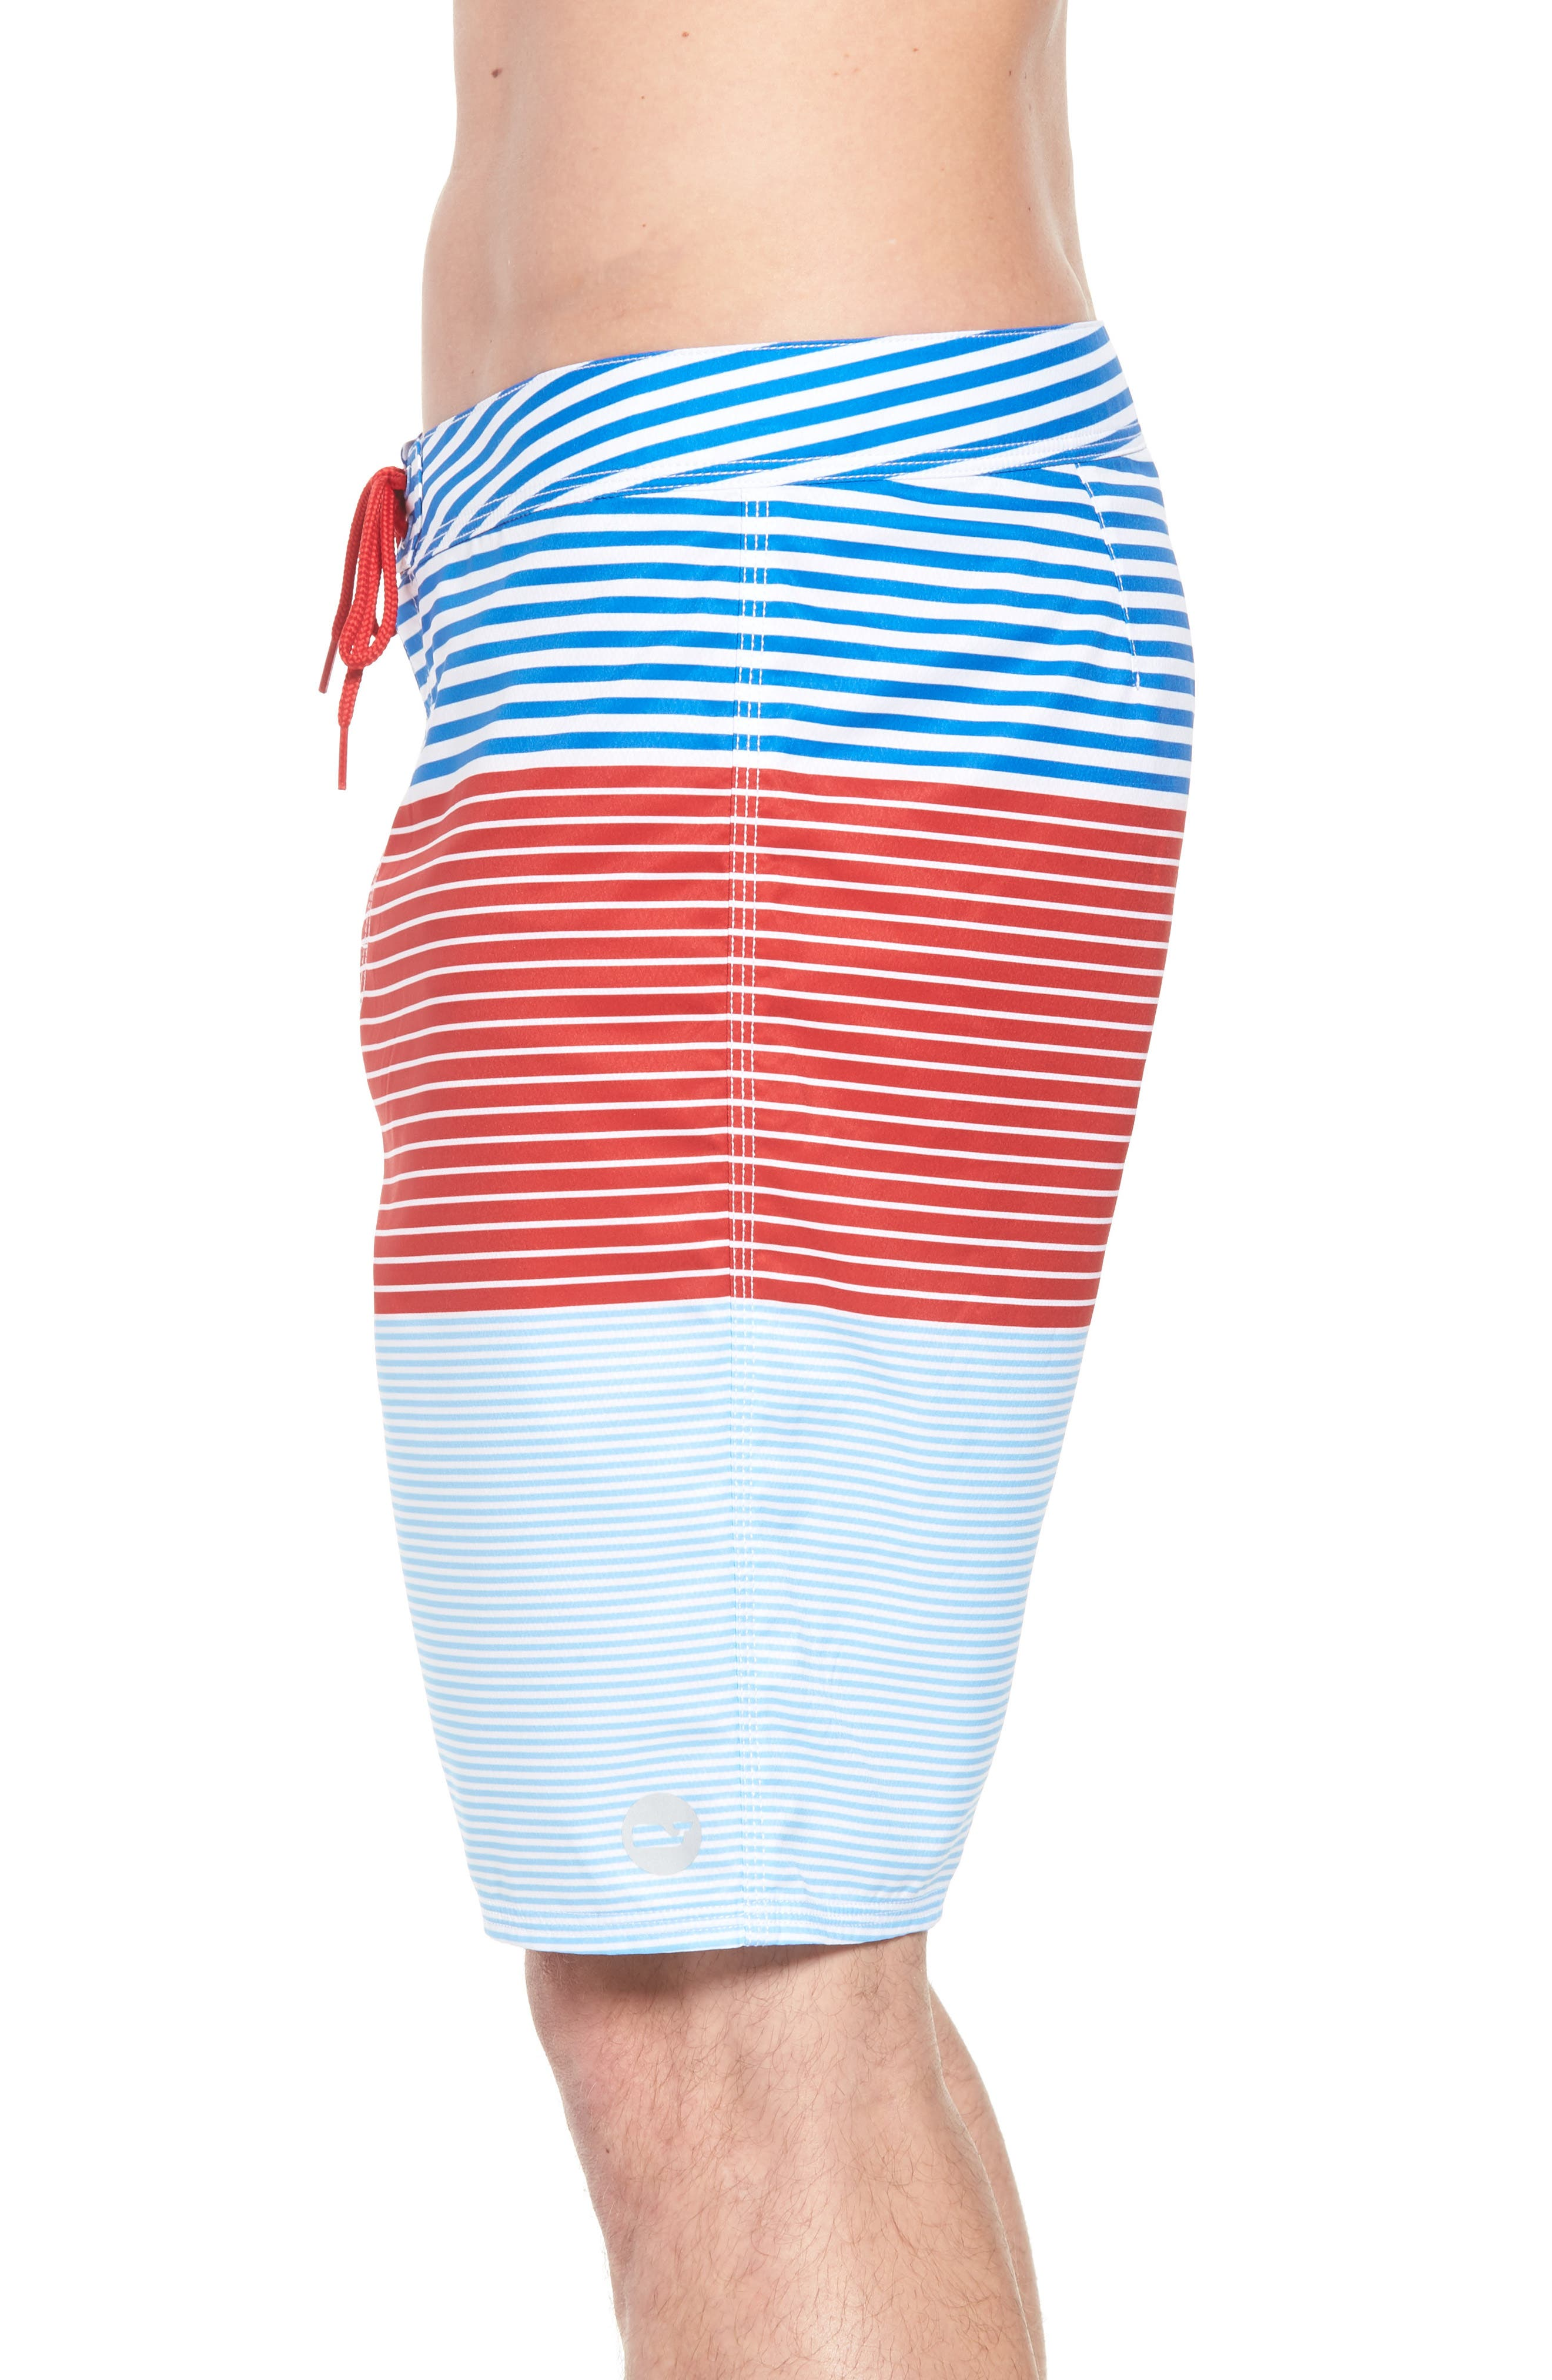 Whale Harbor Stripe Board Shorts,                             Alternate thumbnail 3, color,                             427